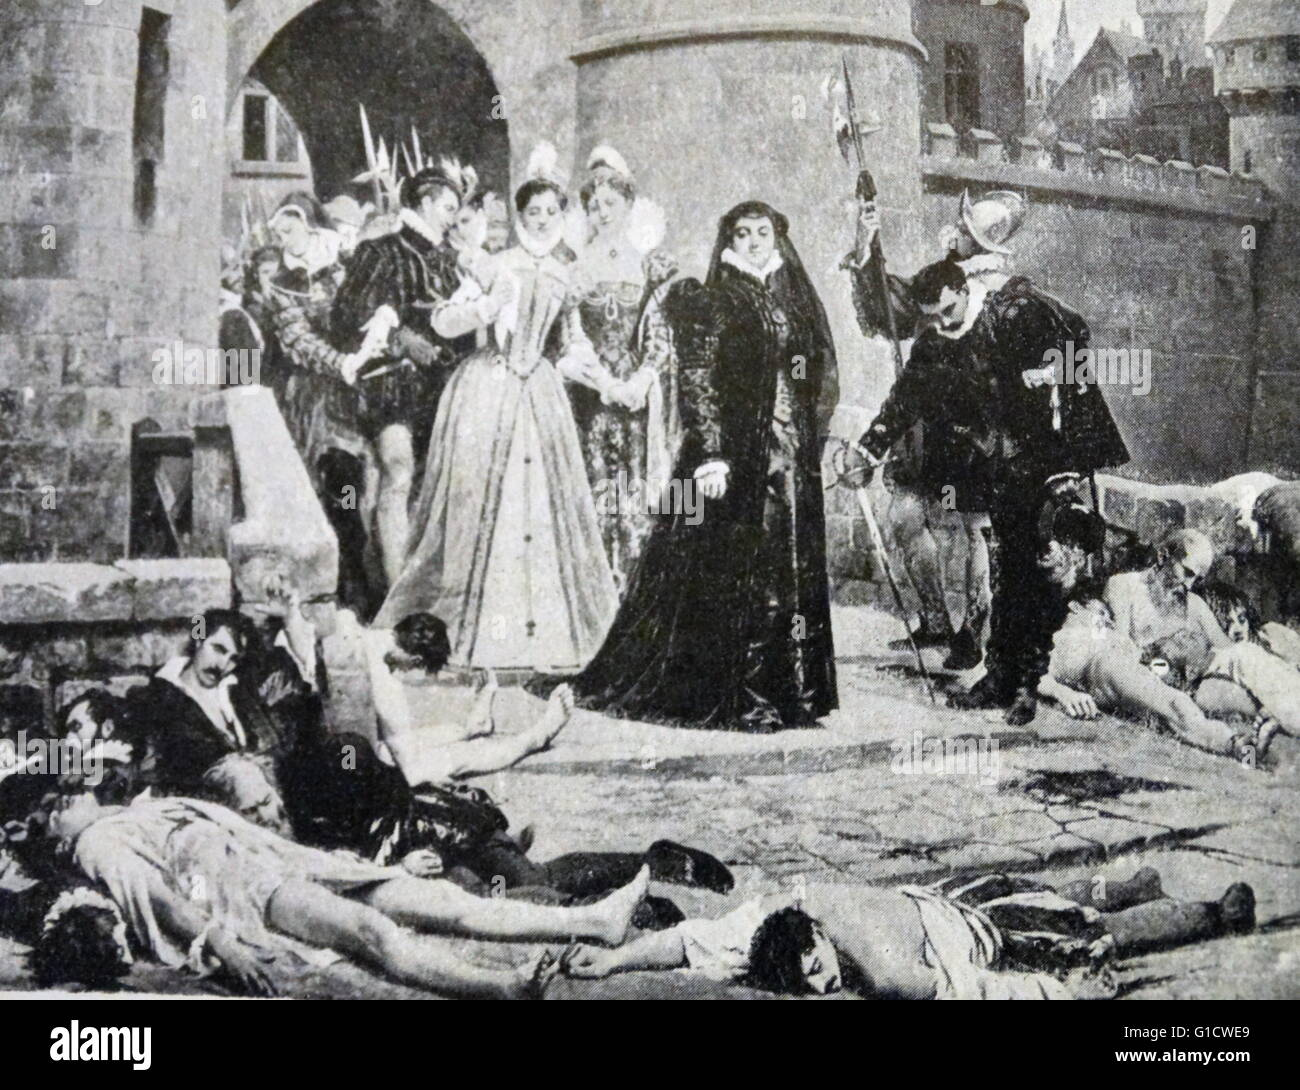 Painting depicting Catherine de Medici (1519-1589) viewing the aftermath of the St. Bartholomew's Day massacre. The massacre was a targeted group of assassinations and a wave of Catholic mob violence, directed against the Huguenots during the French Wars of Religion. Dated 16th Century Stock Photo